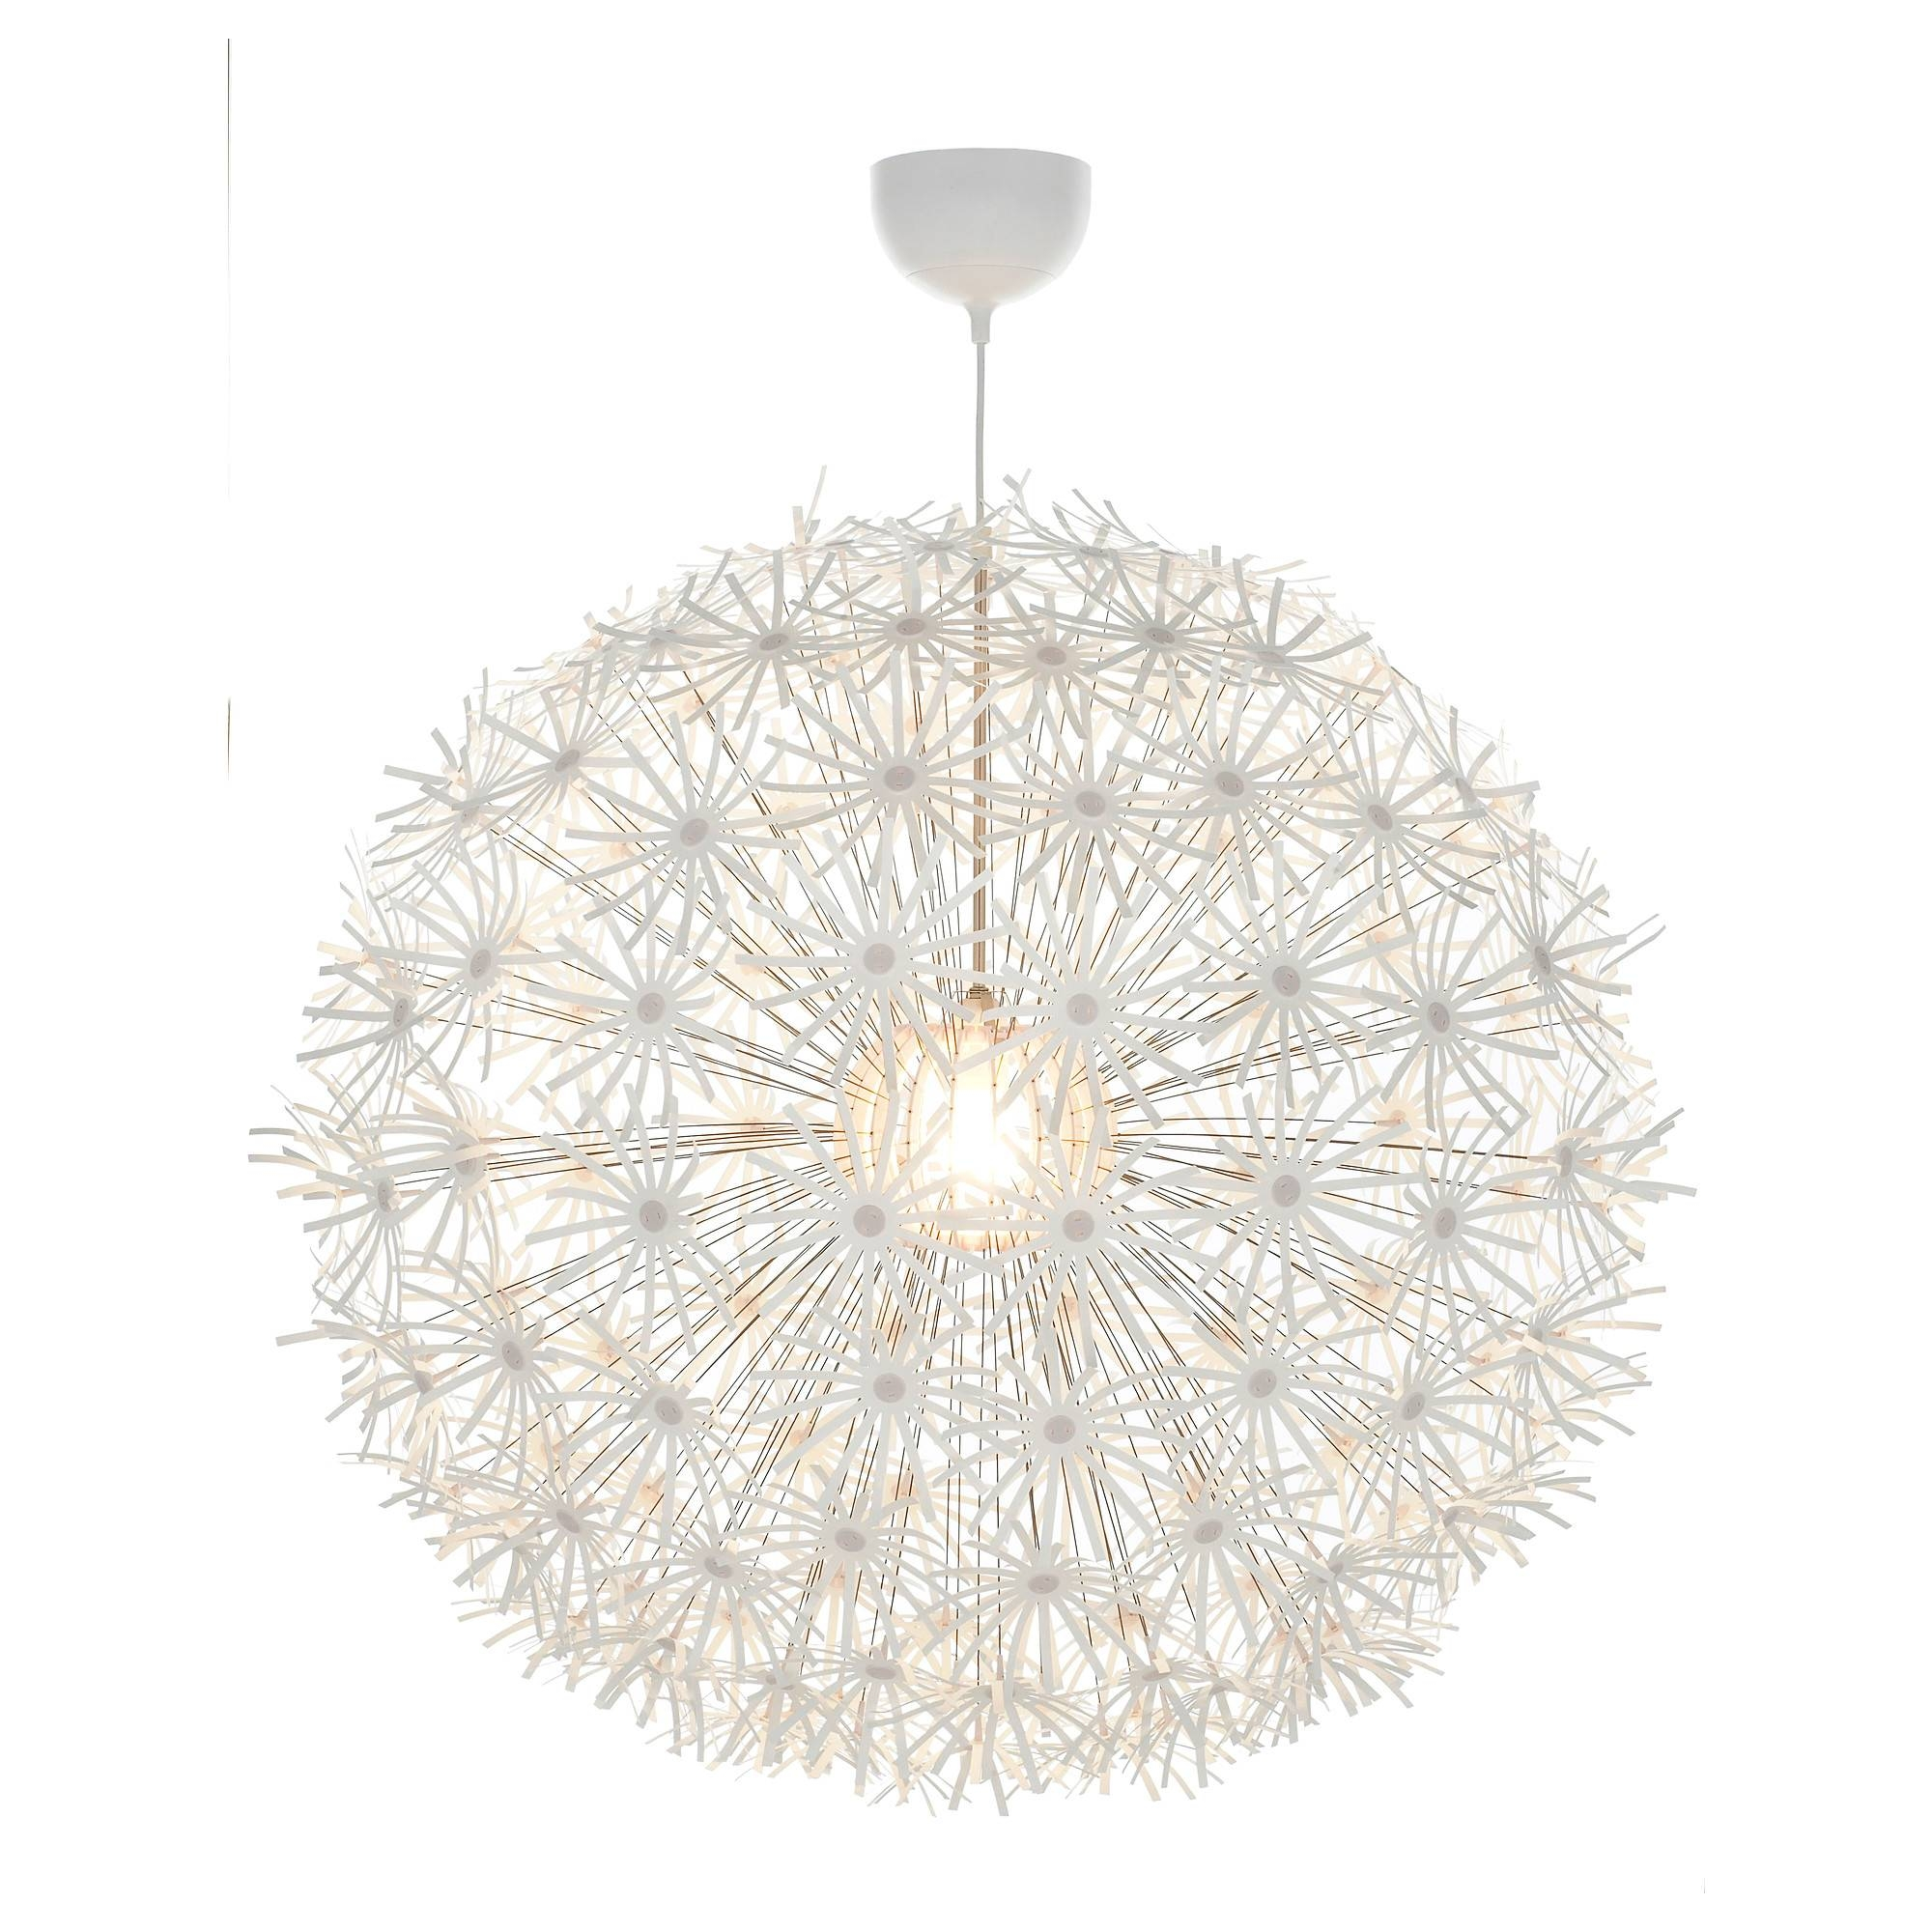 Ceiling Lights & Led Ceiling Lights | Ikea With Flower Pendant Lights (View 10 of 15)